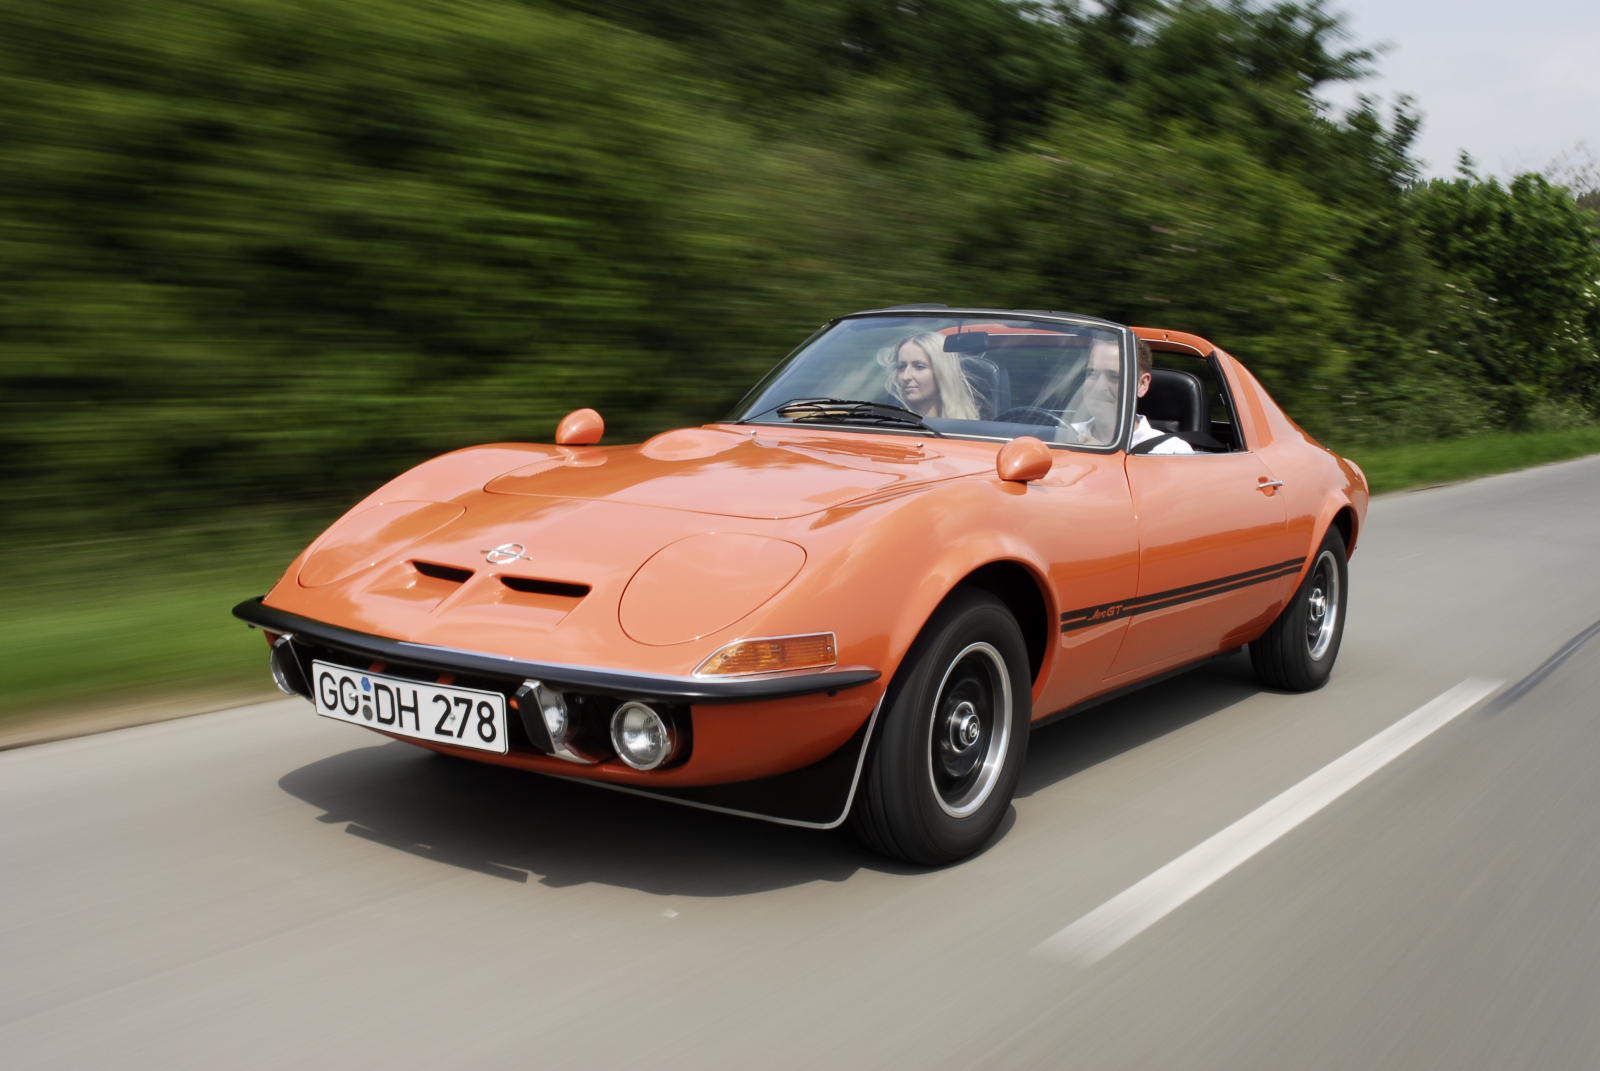 Only a dream: Opel presented the Aero GT concept car at the 1969 Frankfurt Motor Show – unfortunately, it was never made in series.